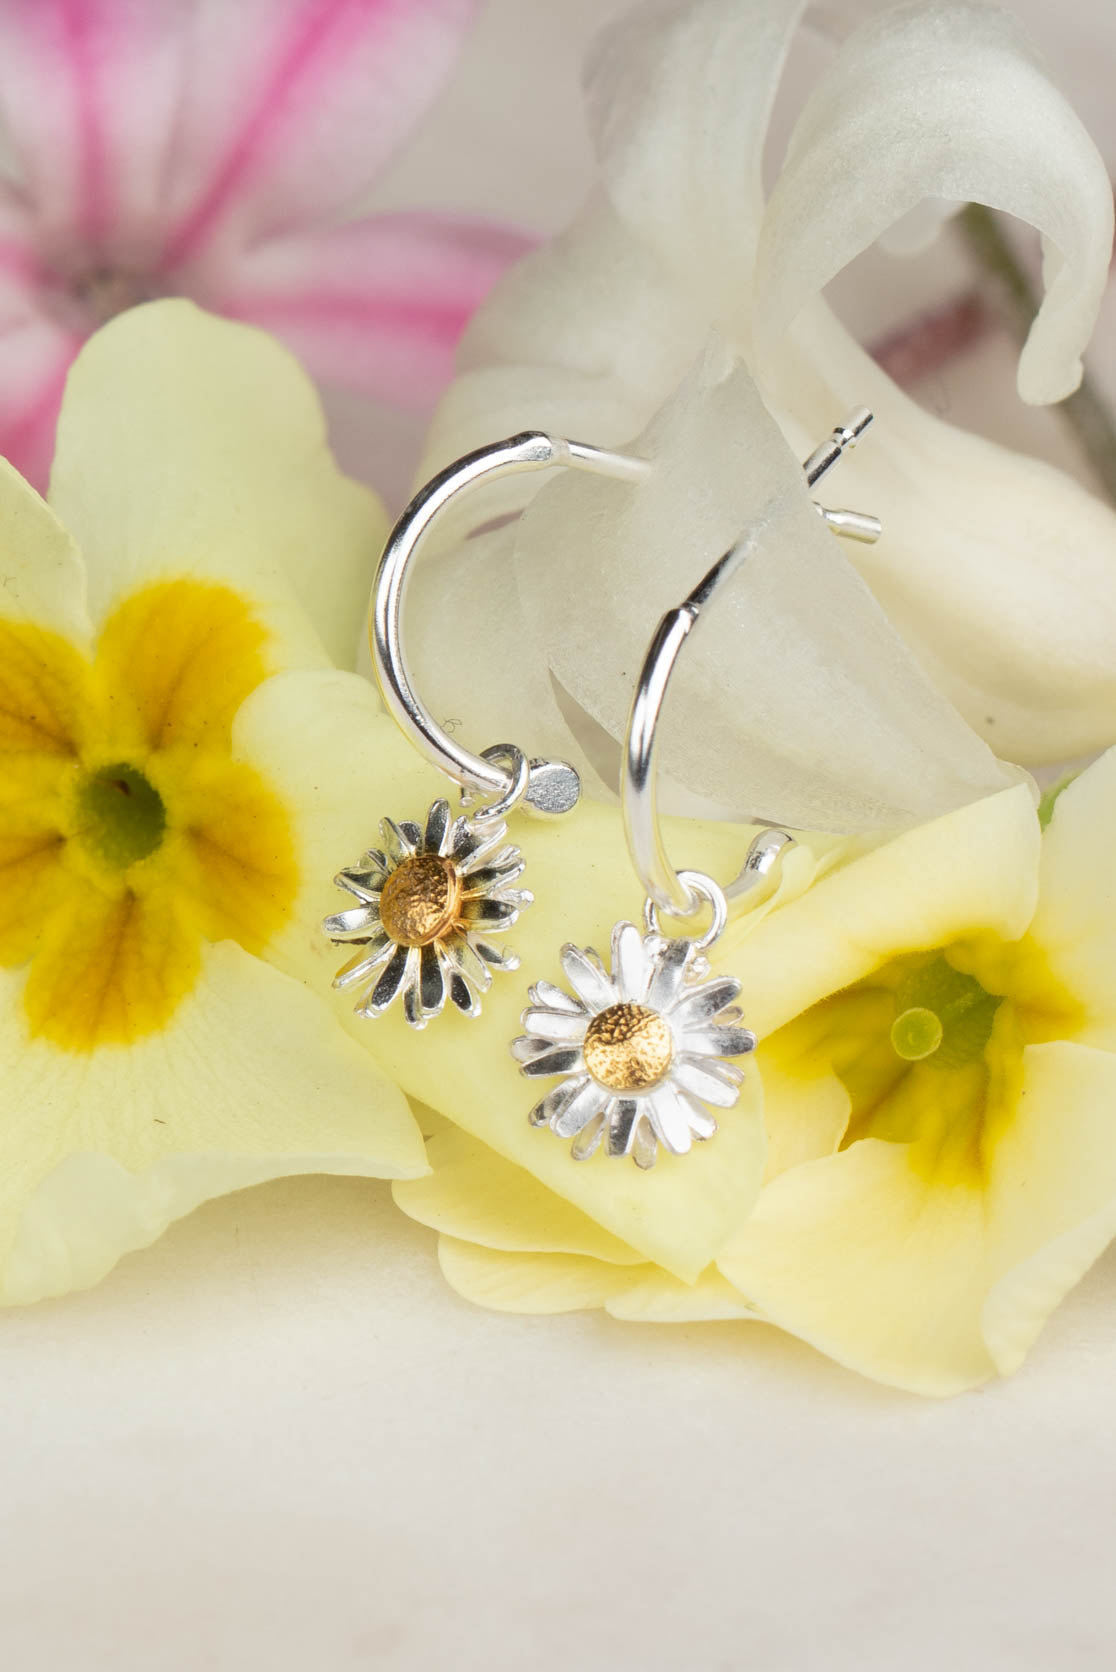 Sterling Silver and Gold Daisy Earrings - Daisy Flower Head on Hoops